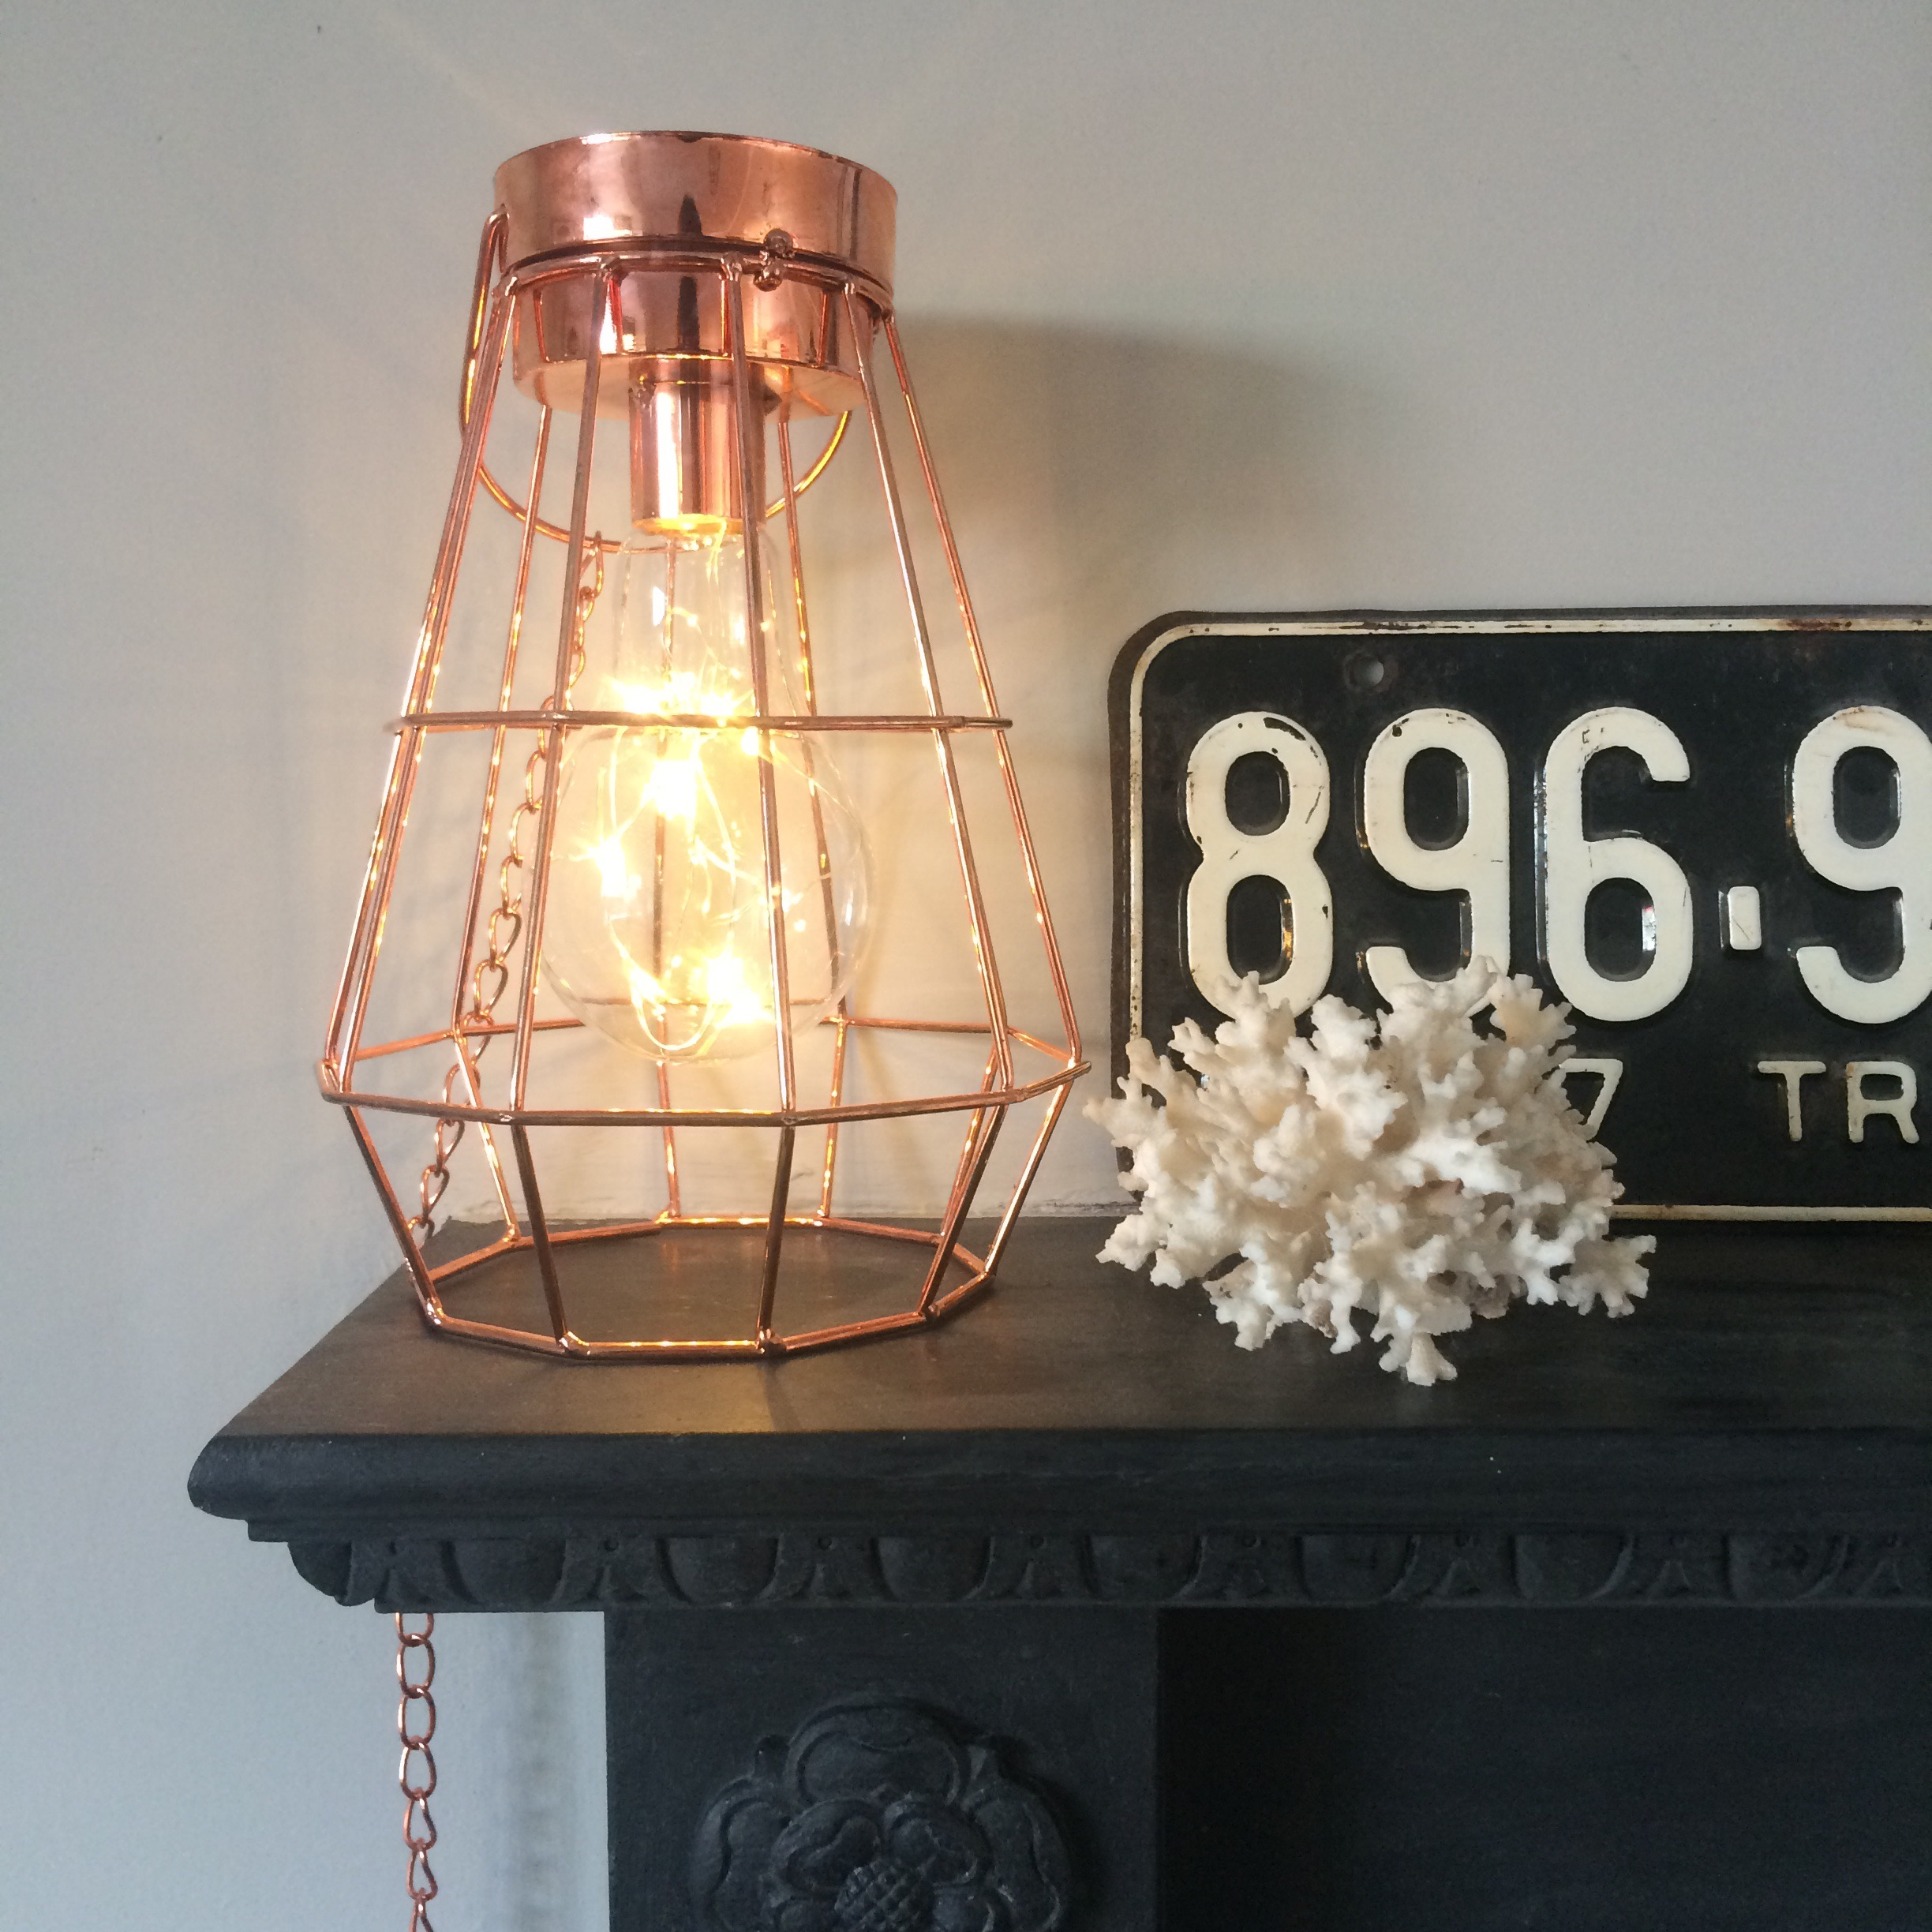 monochrome combined with copper accents